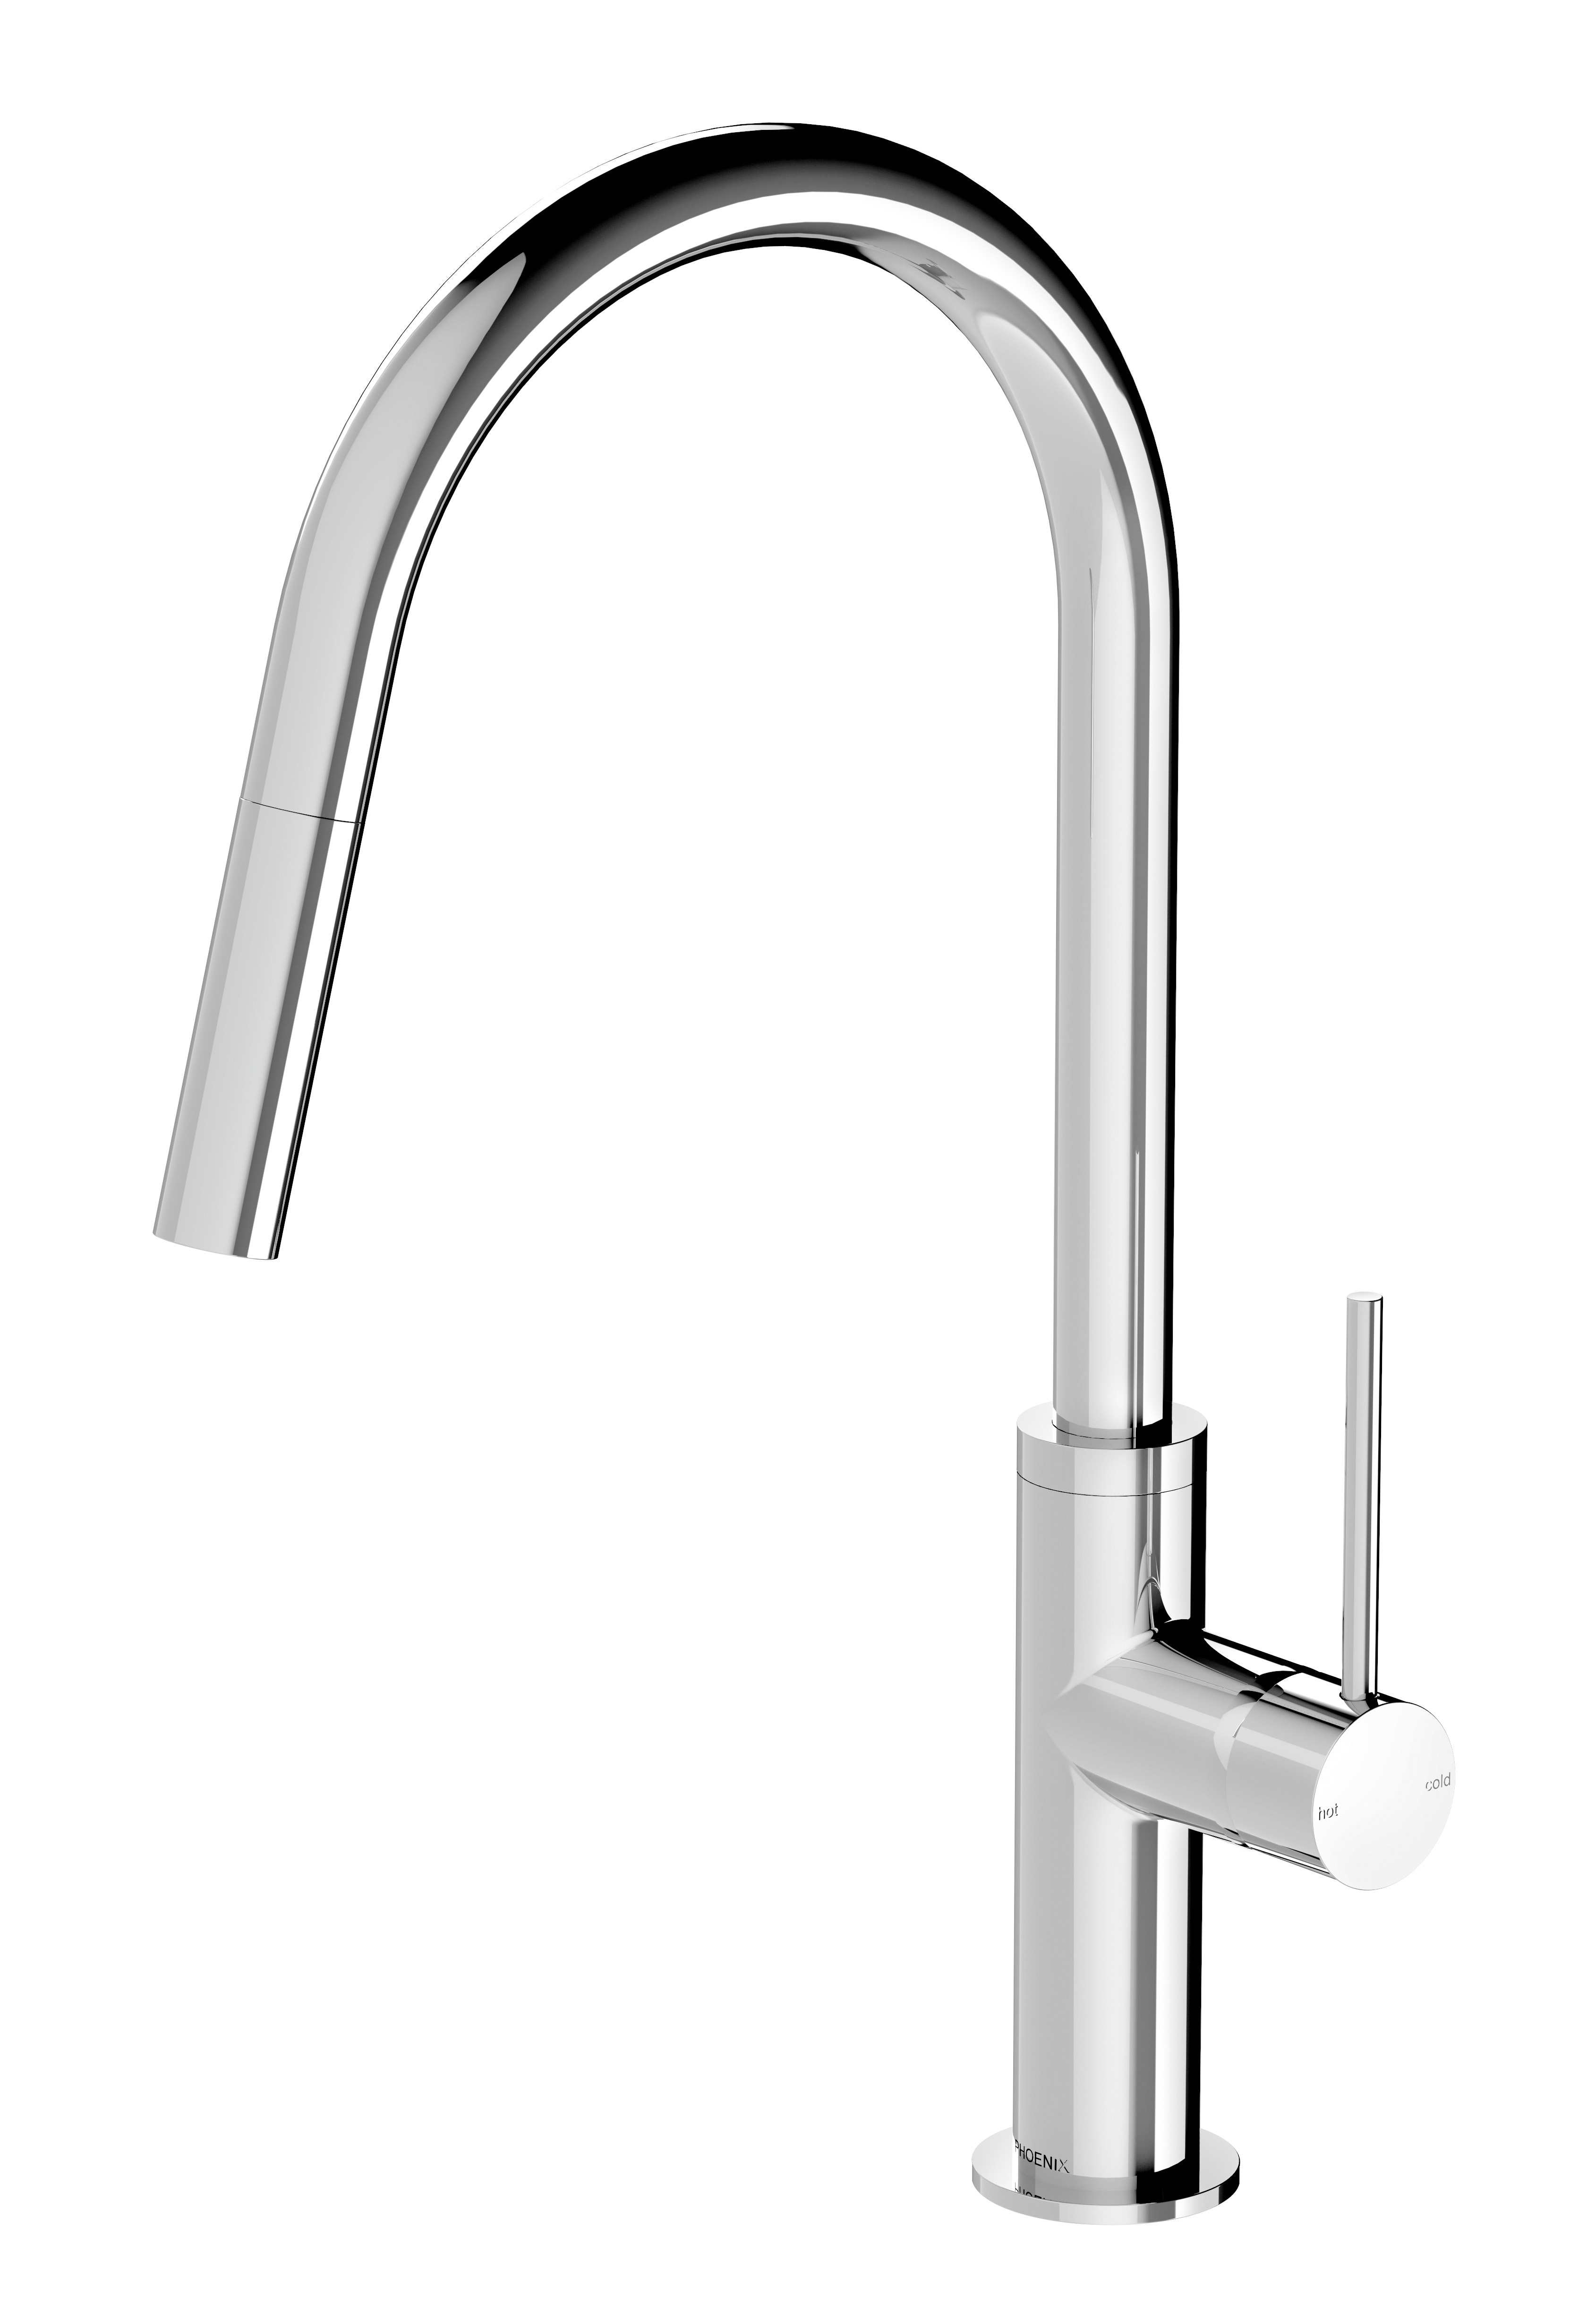 VS7105 00 Vivid Slimline Pull Out Sink Mixer 1